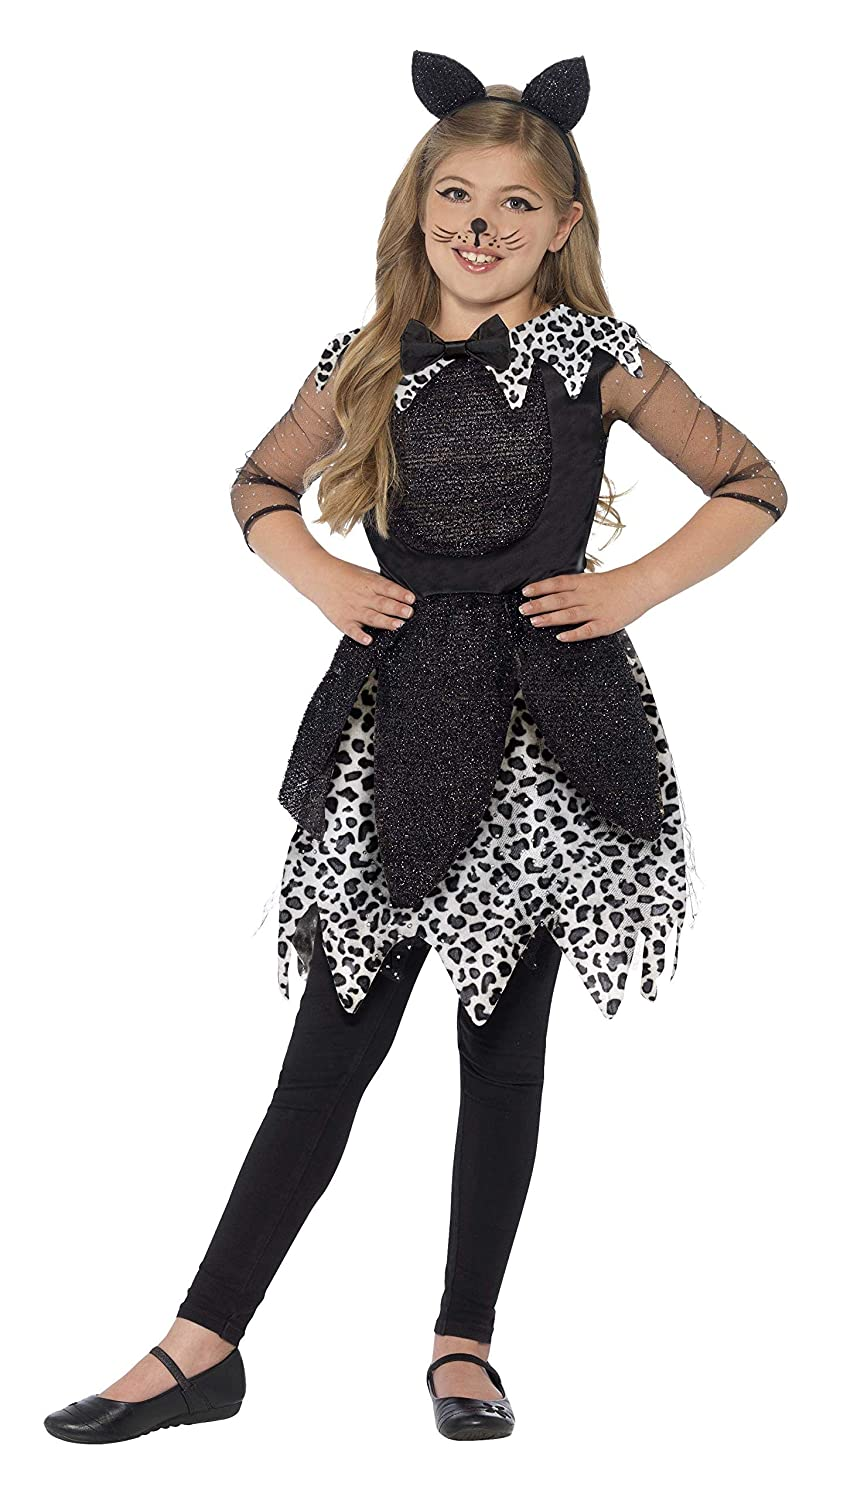 Amazon.com: Smiffys Girls Deluxe Black Midnight Cat Halloween Fancy Dress Costume: Toys & Games